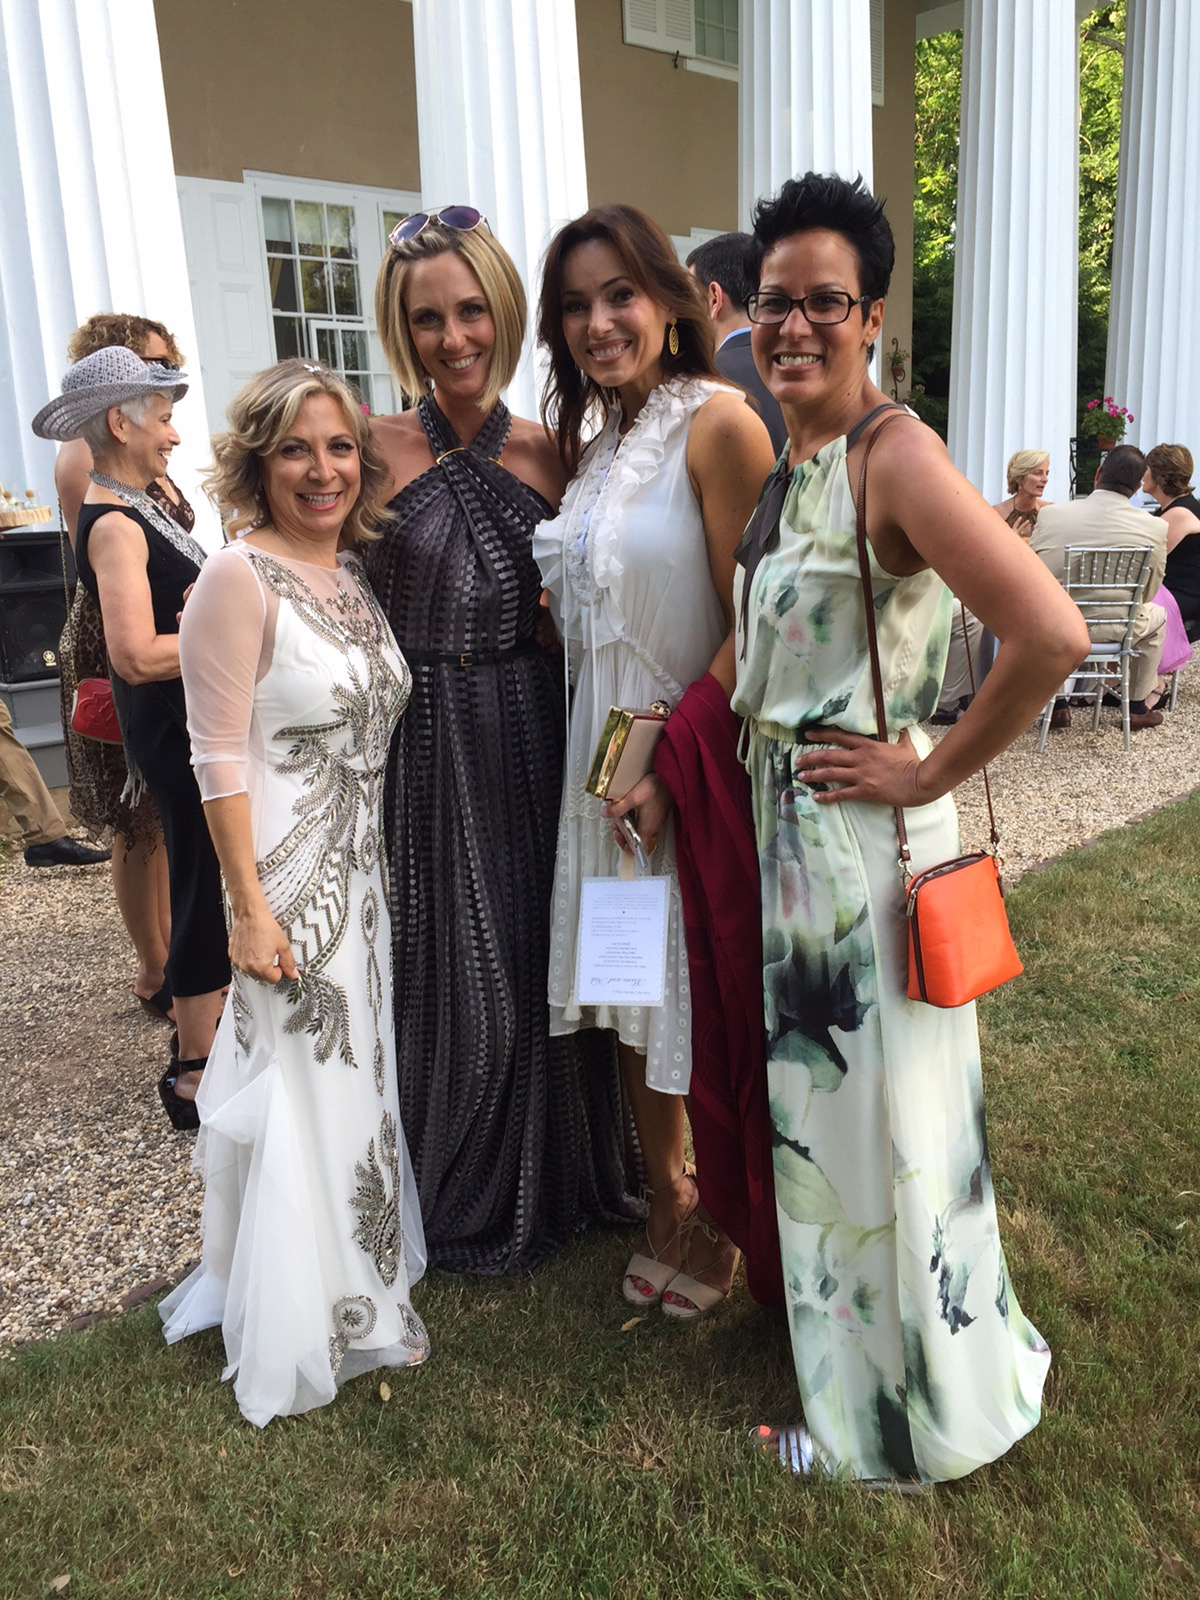 Lisa robertson in wedding dress -  To Spend The Evening Laughing With Shawn Killinger And Her Husband Joe As Well As Jane Tracey Mary Beth Roe And Jill Bauer It Wasn T A Huge Wedding